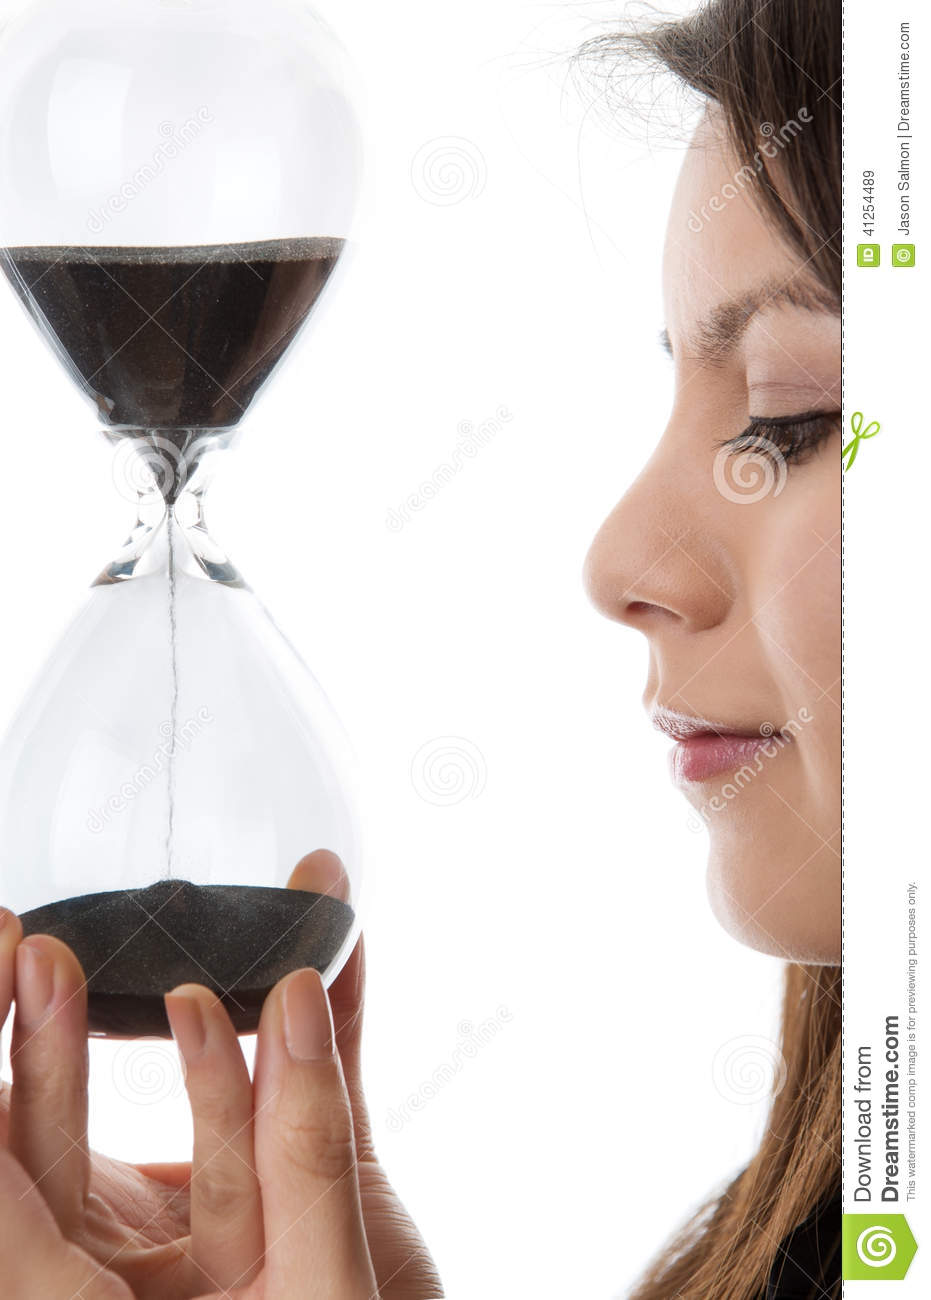 Hour Glass Sand Timer Stock Image Image Of People Woman 41254489